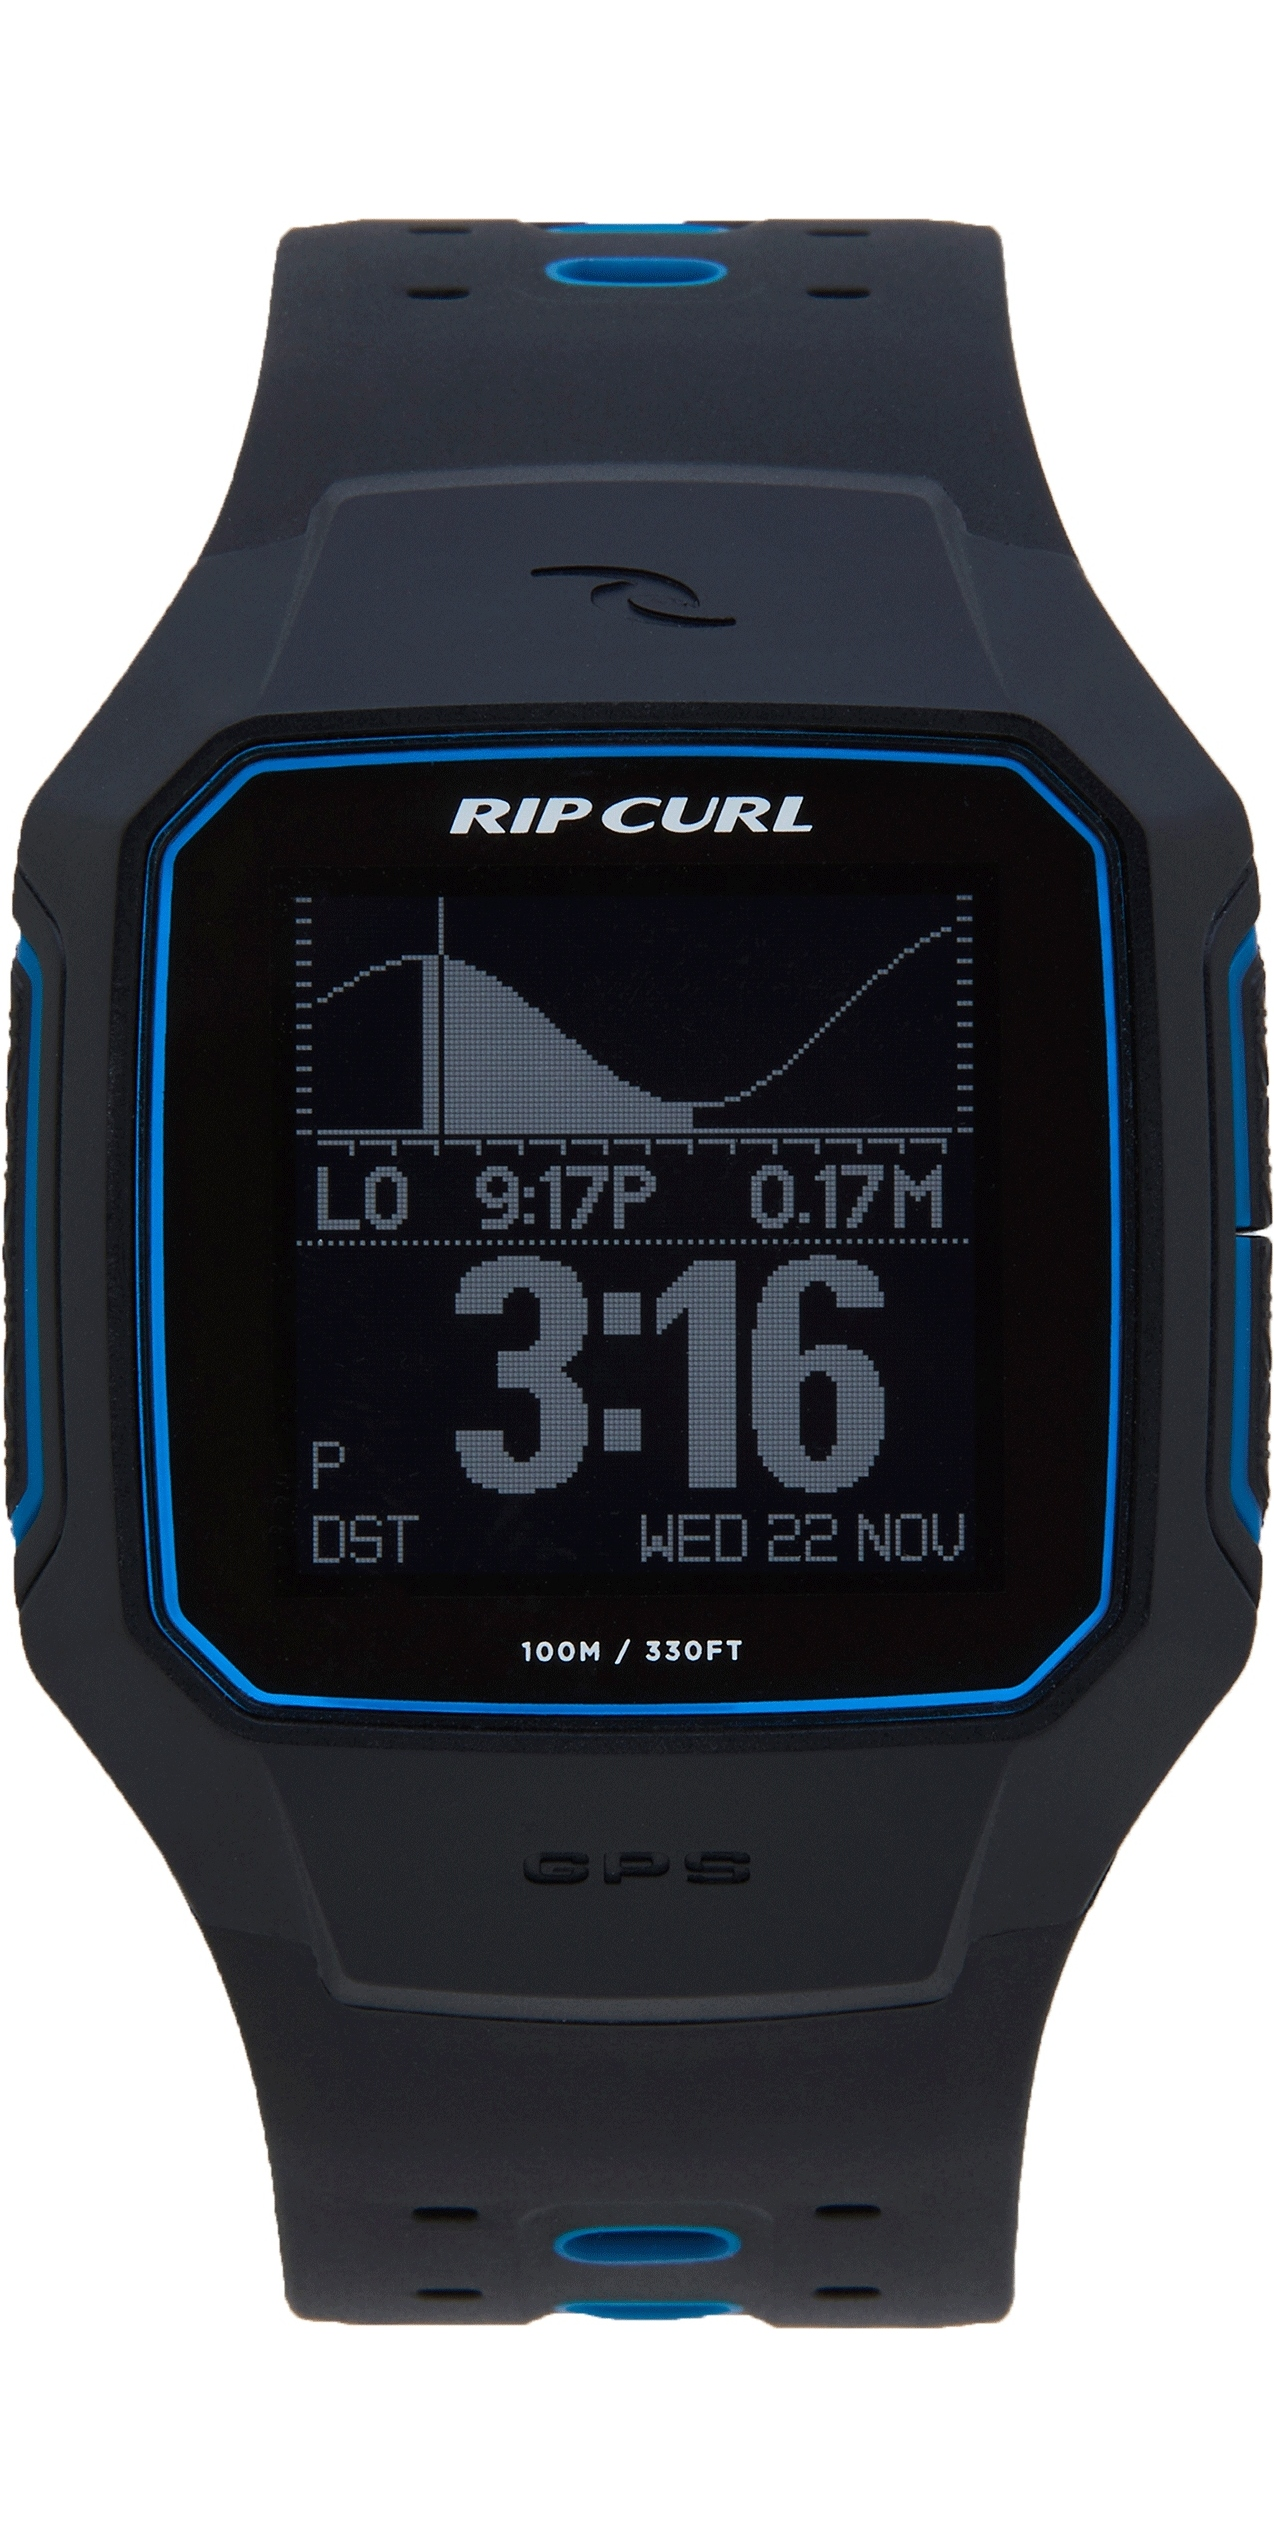 2019 Rip Curl Search Gps Series 2 Relógio De Surf Inteligente Azul A1144